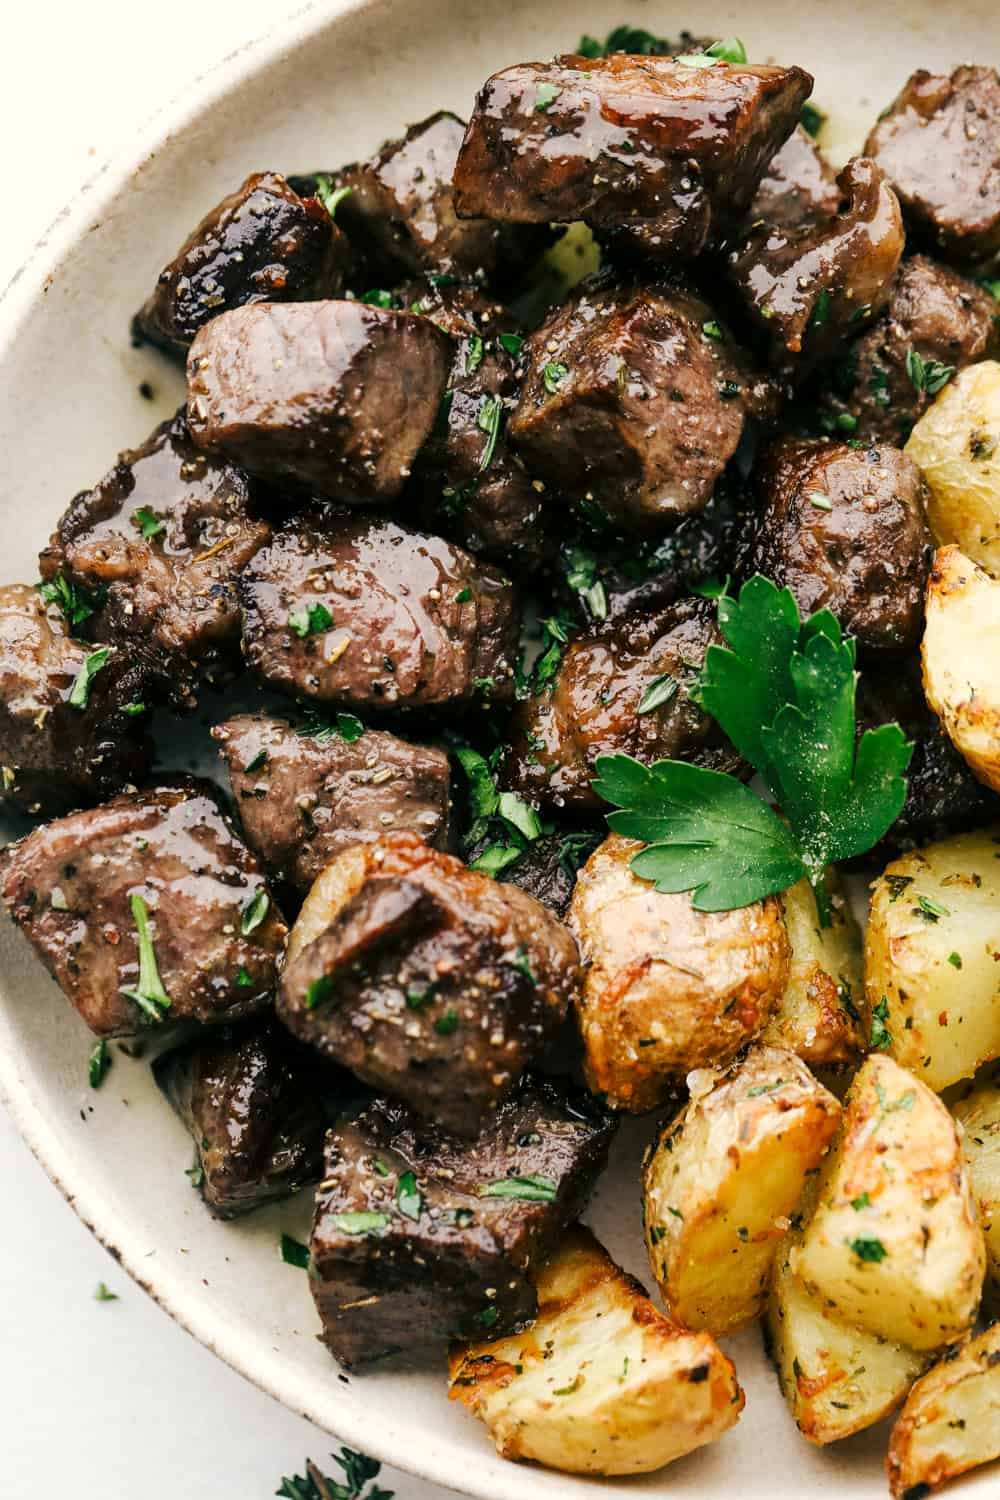 Air Fryer steak bites with roasted potatoes on a plate.